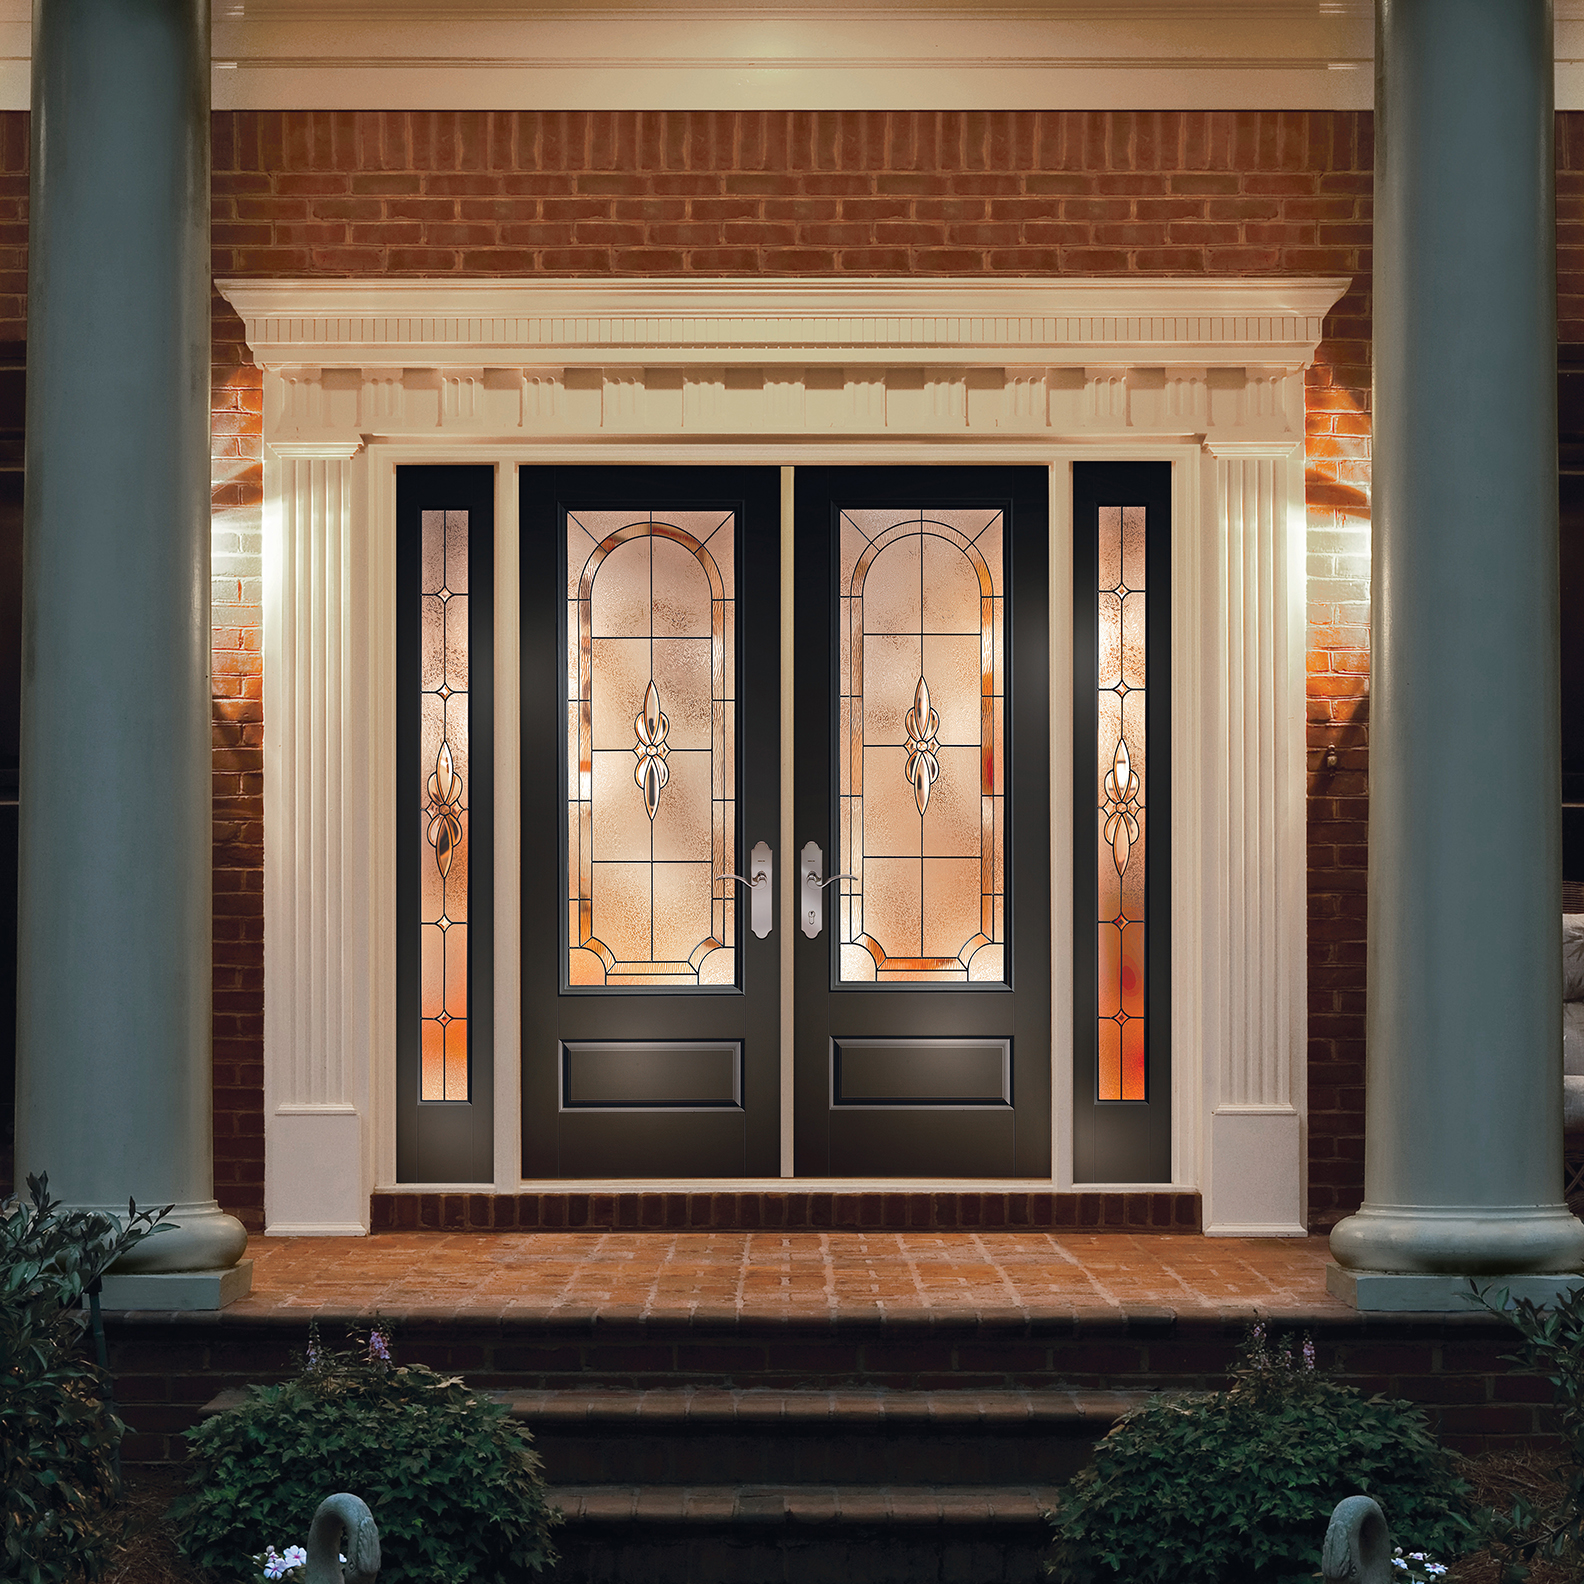 CLASSIC-CRAFT CANVAS ENTRY DOOR SYSTEMS